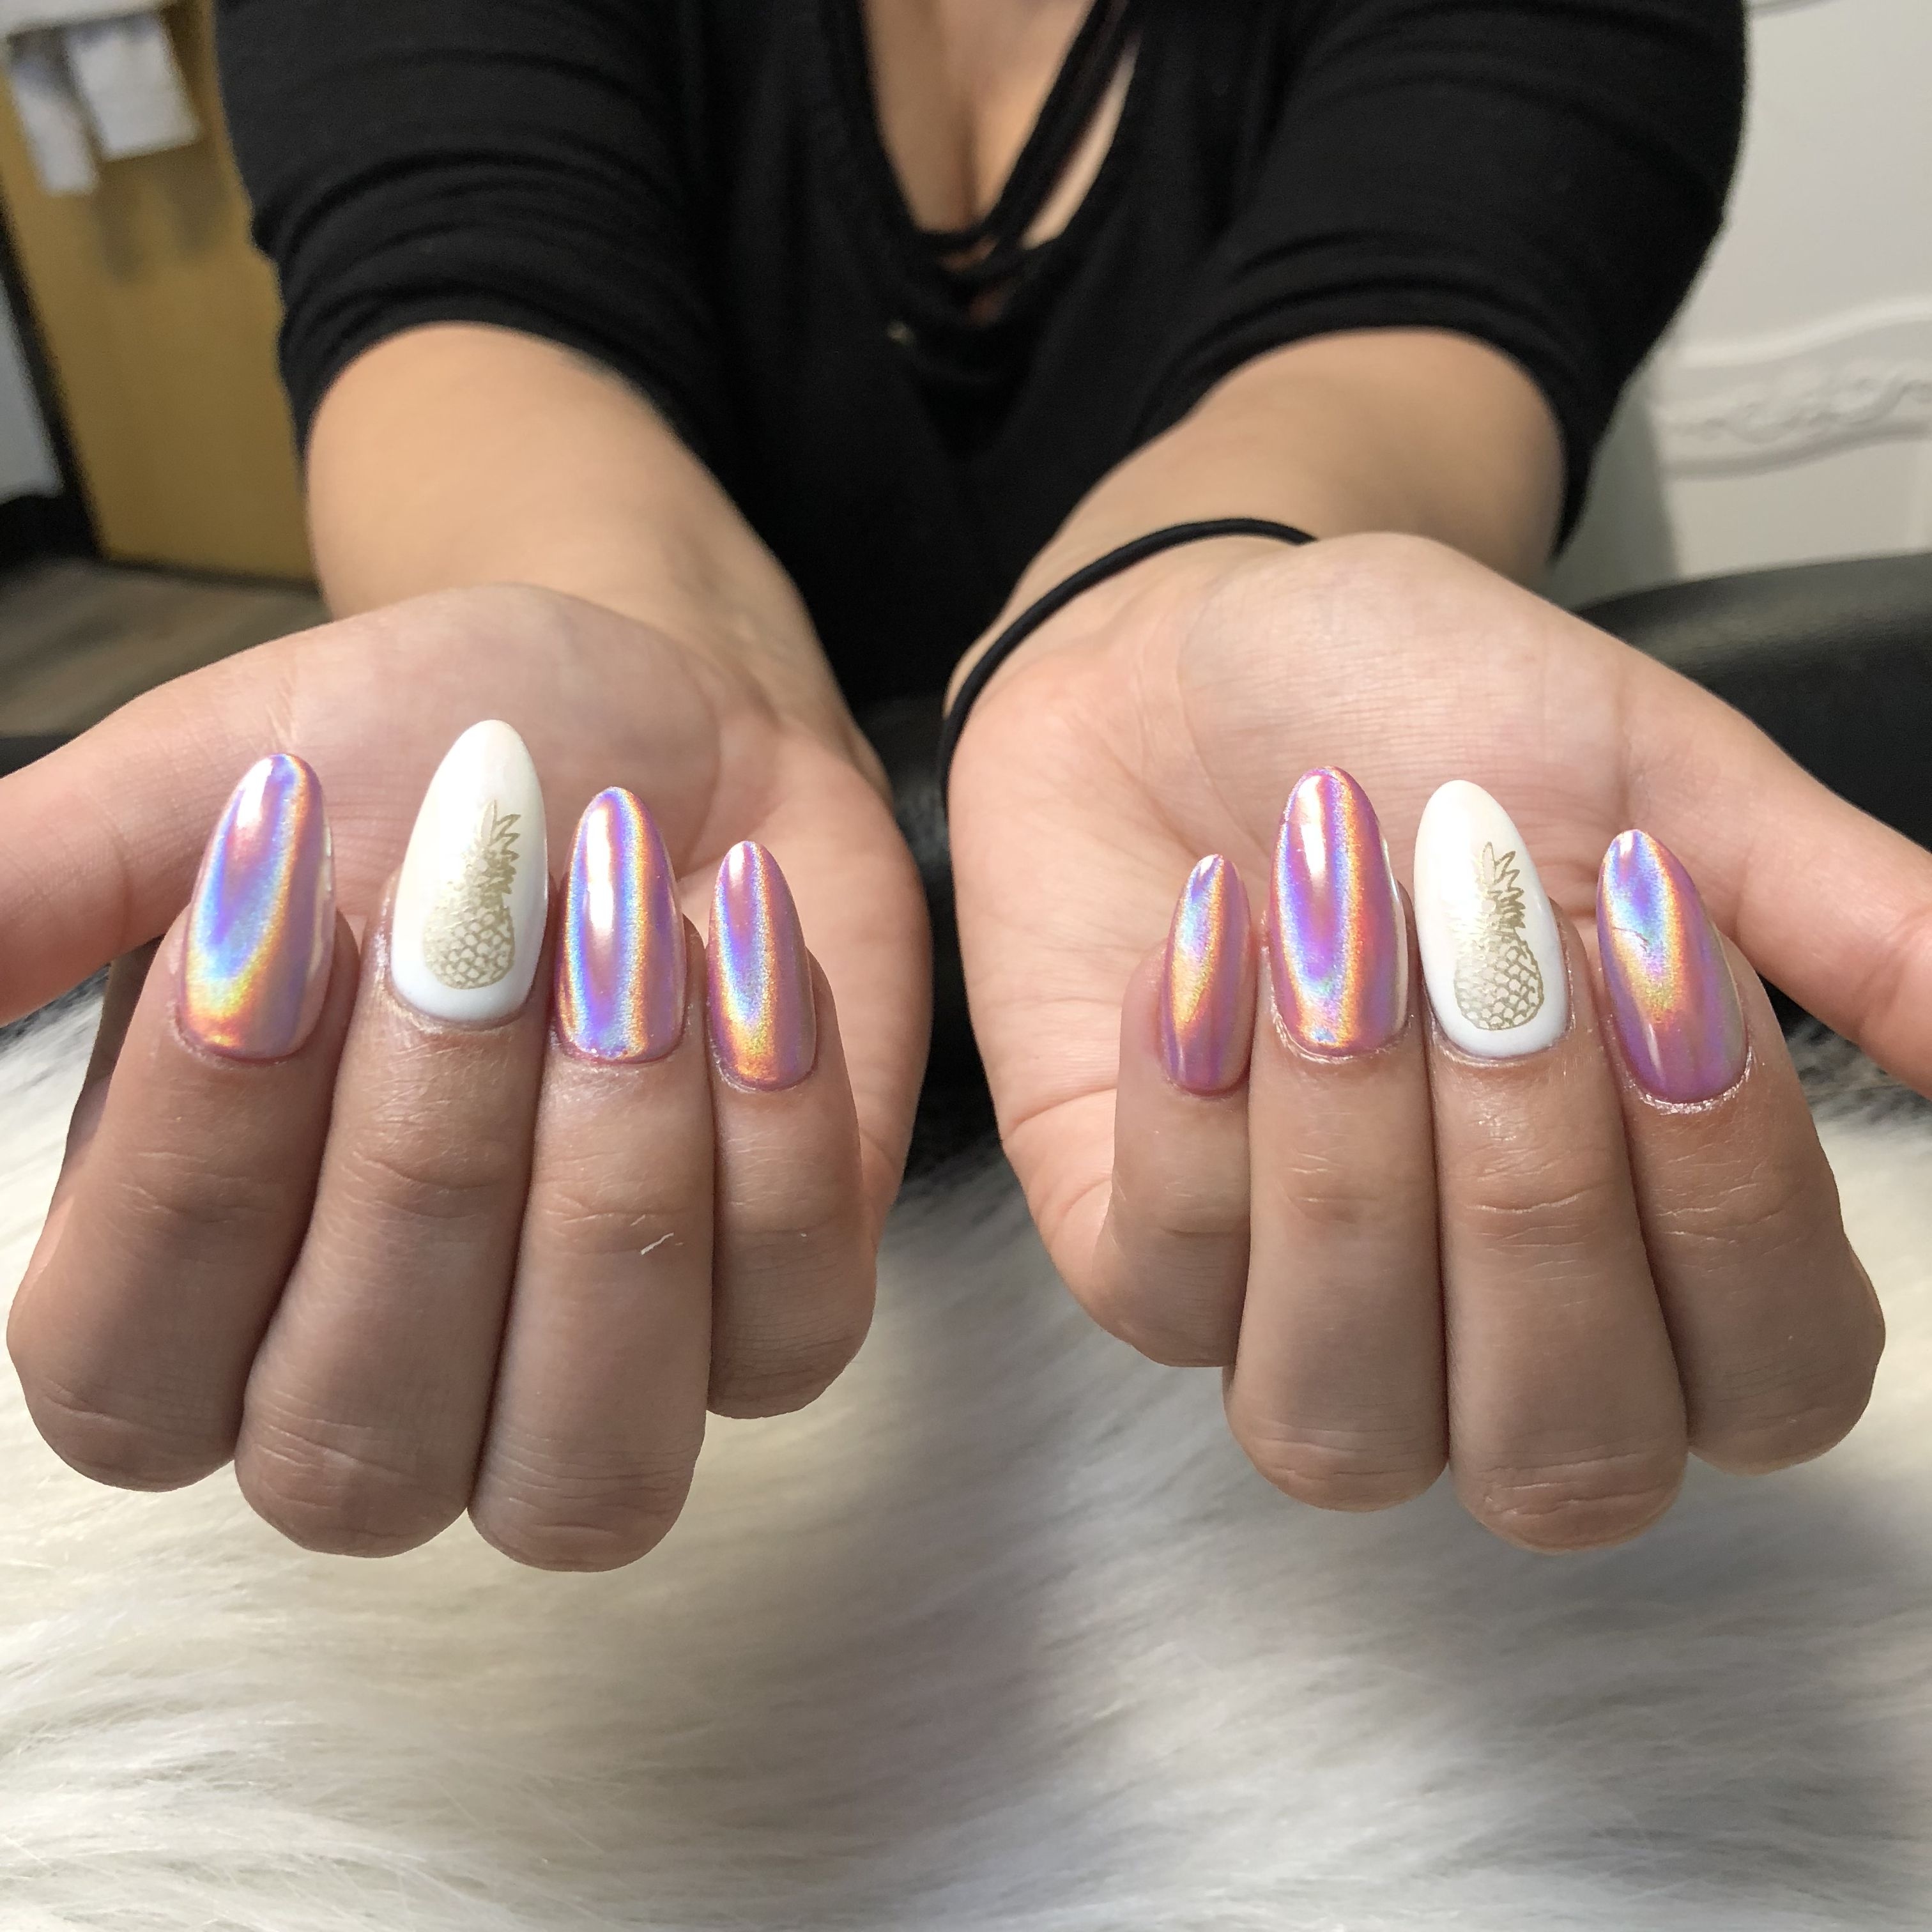 20 July 2020 in 2020 | My nails, Nails, Beauty